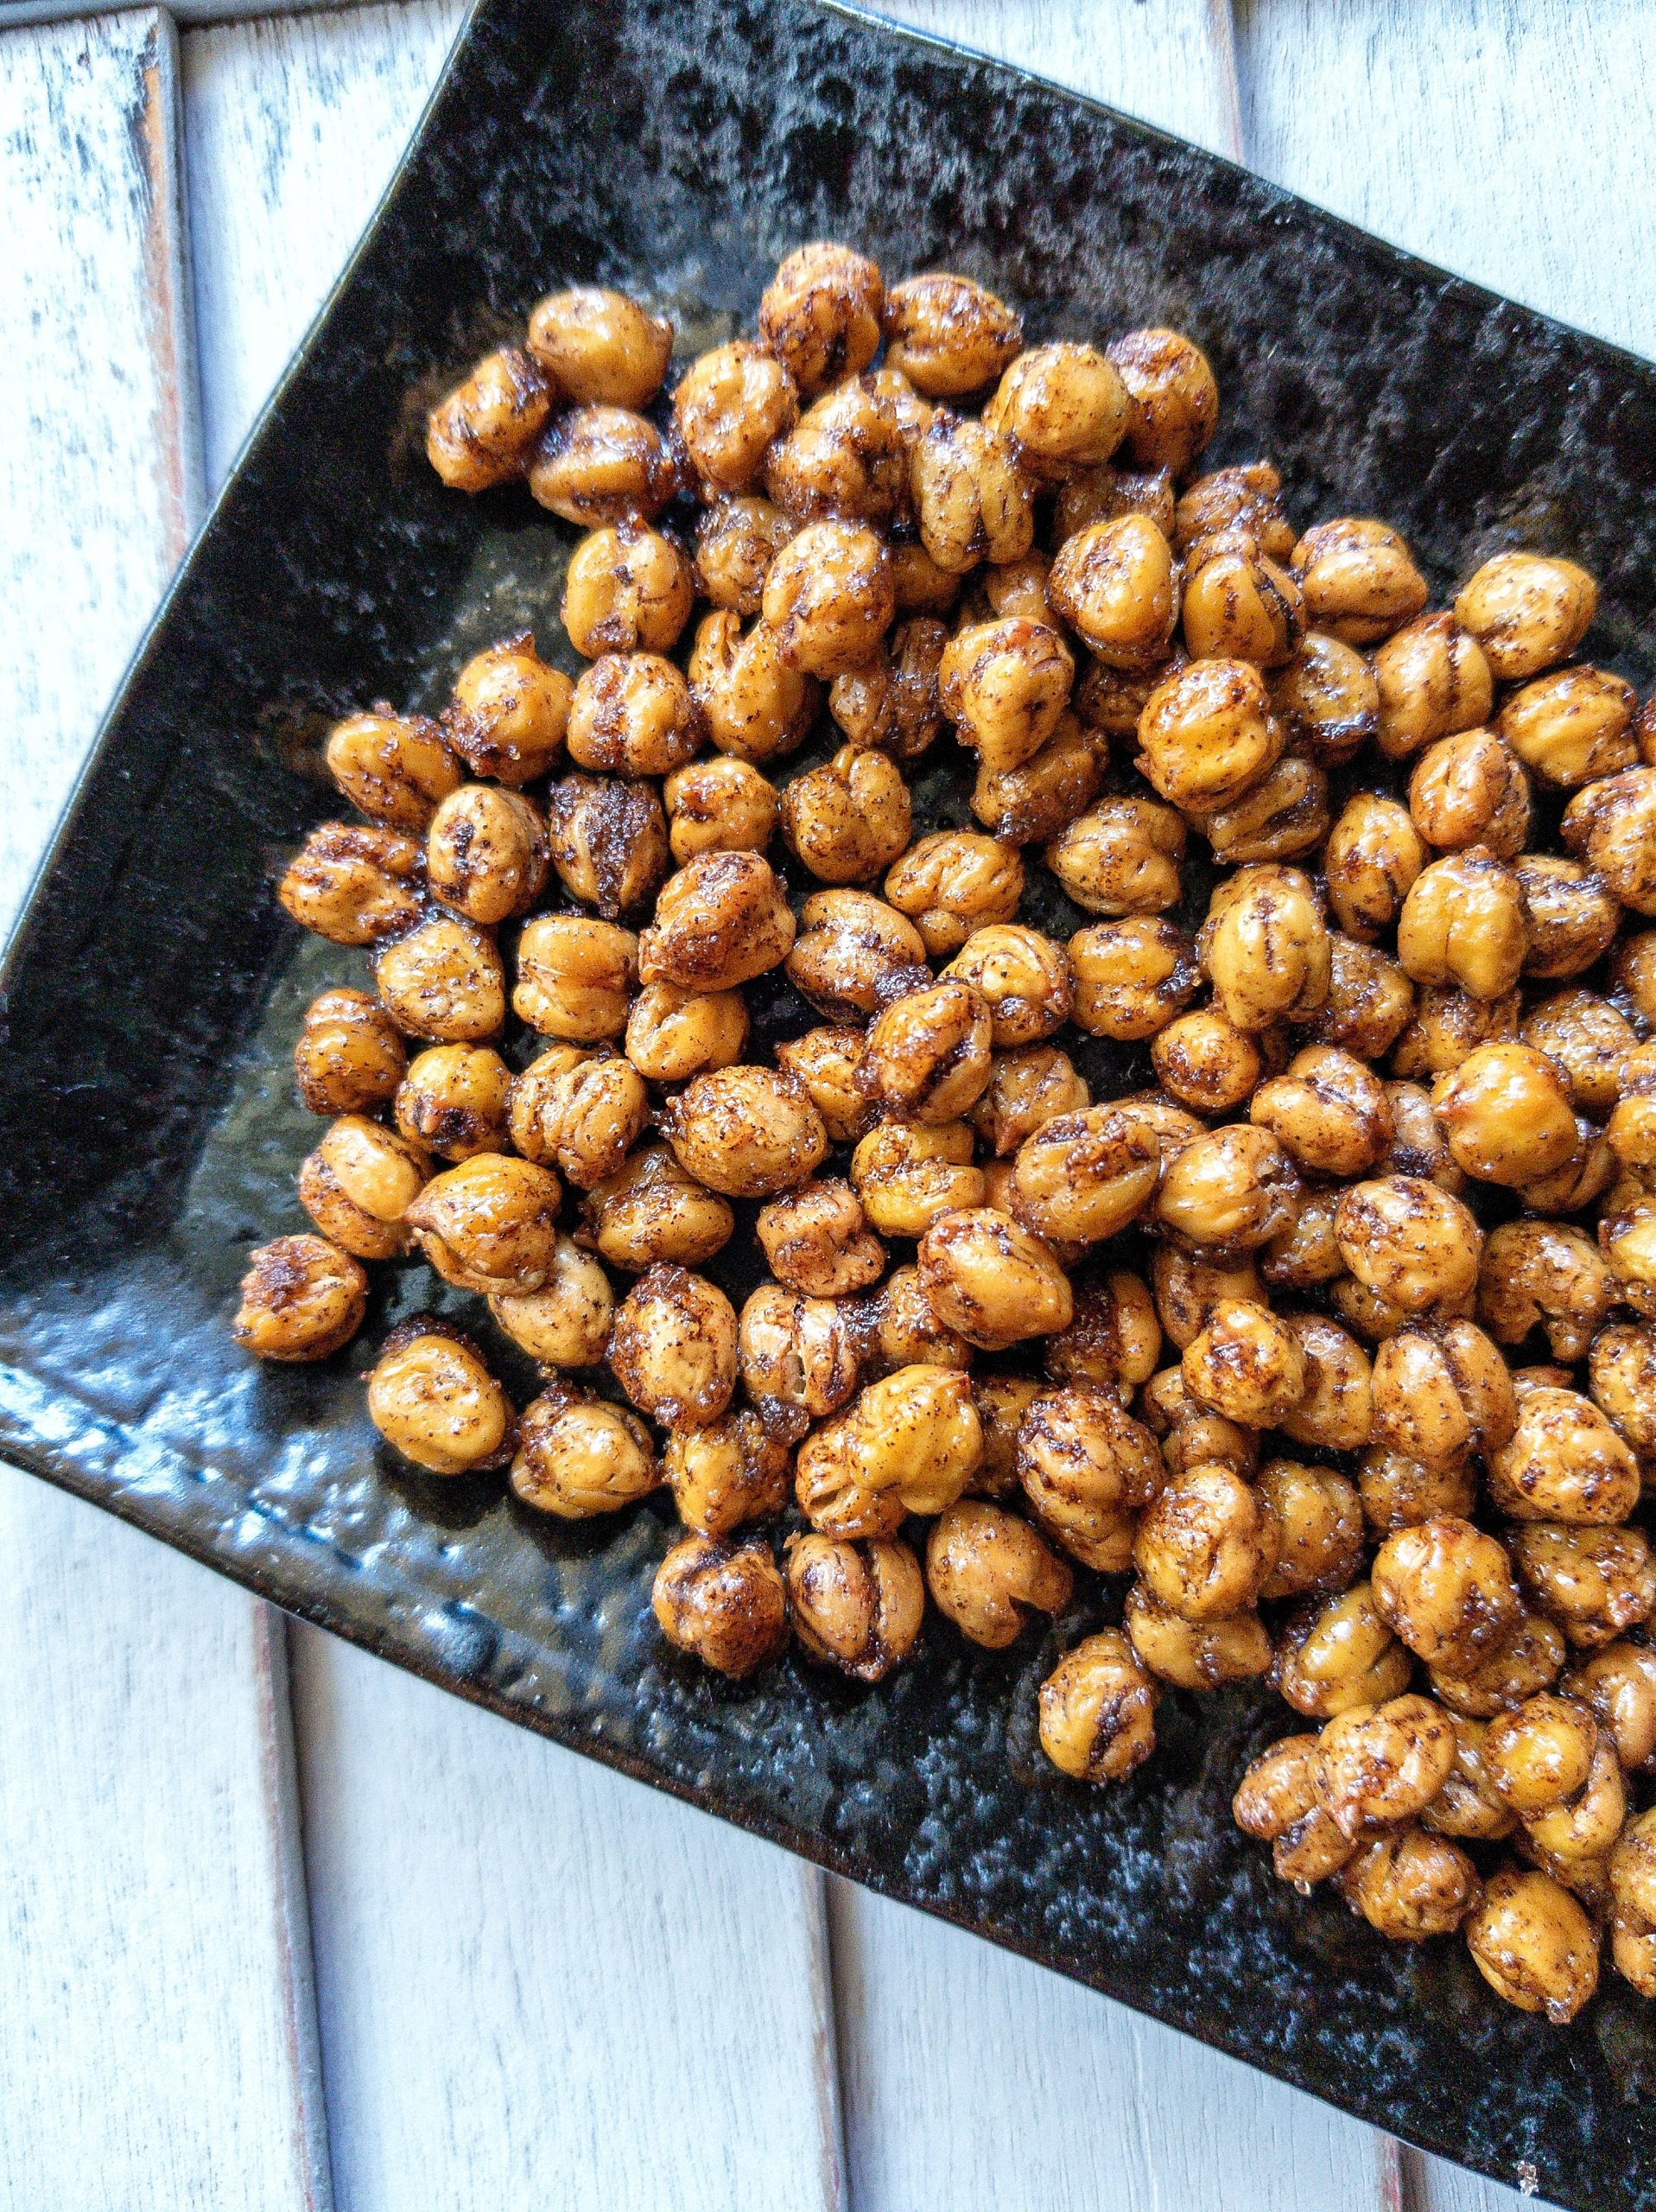 Roasted chickpeas with cinnamon on a small, black platter